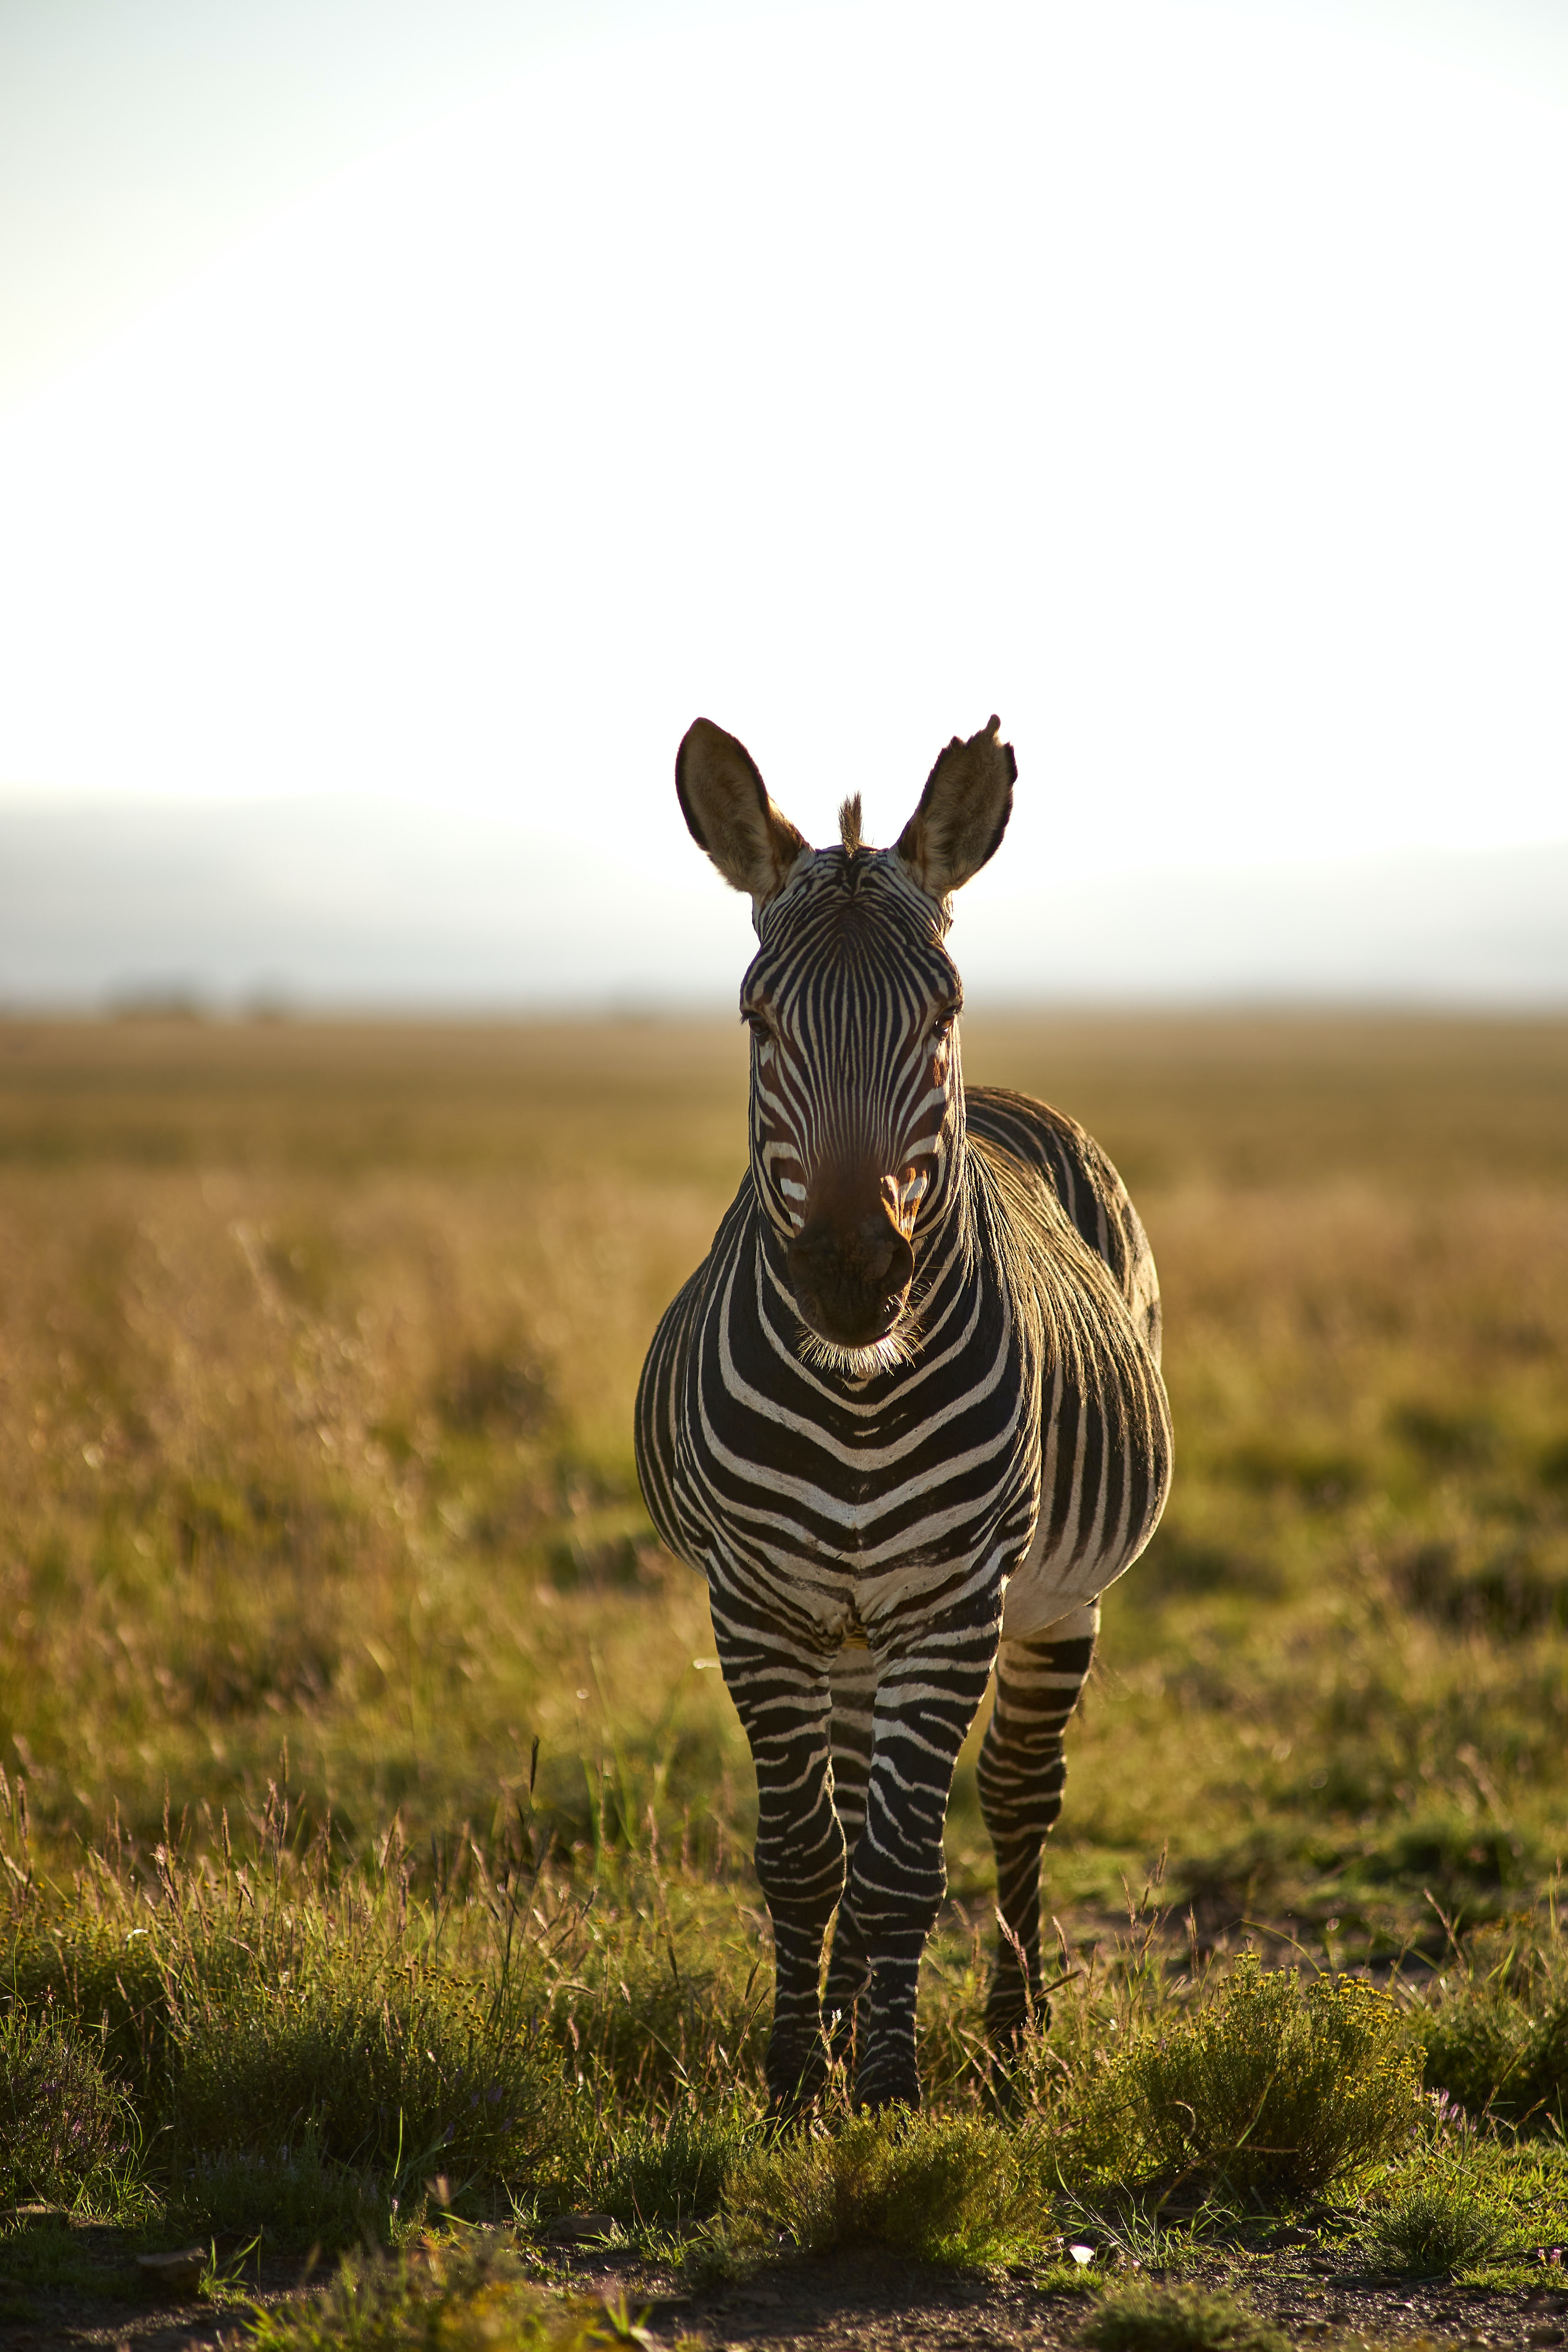 82239 download wallpaper Animals, Zebra, Animal, Stripes, Streaks, Wildlife screensavers and pictures for free